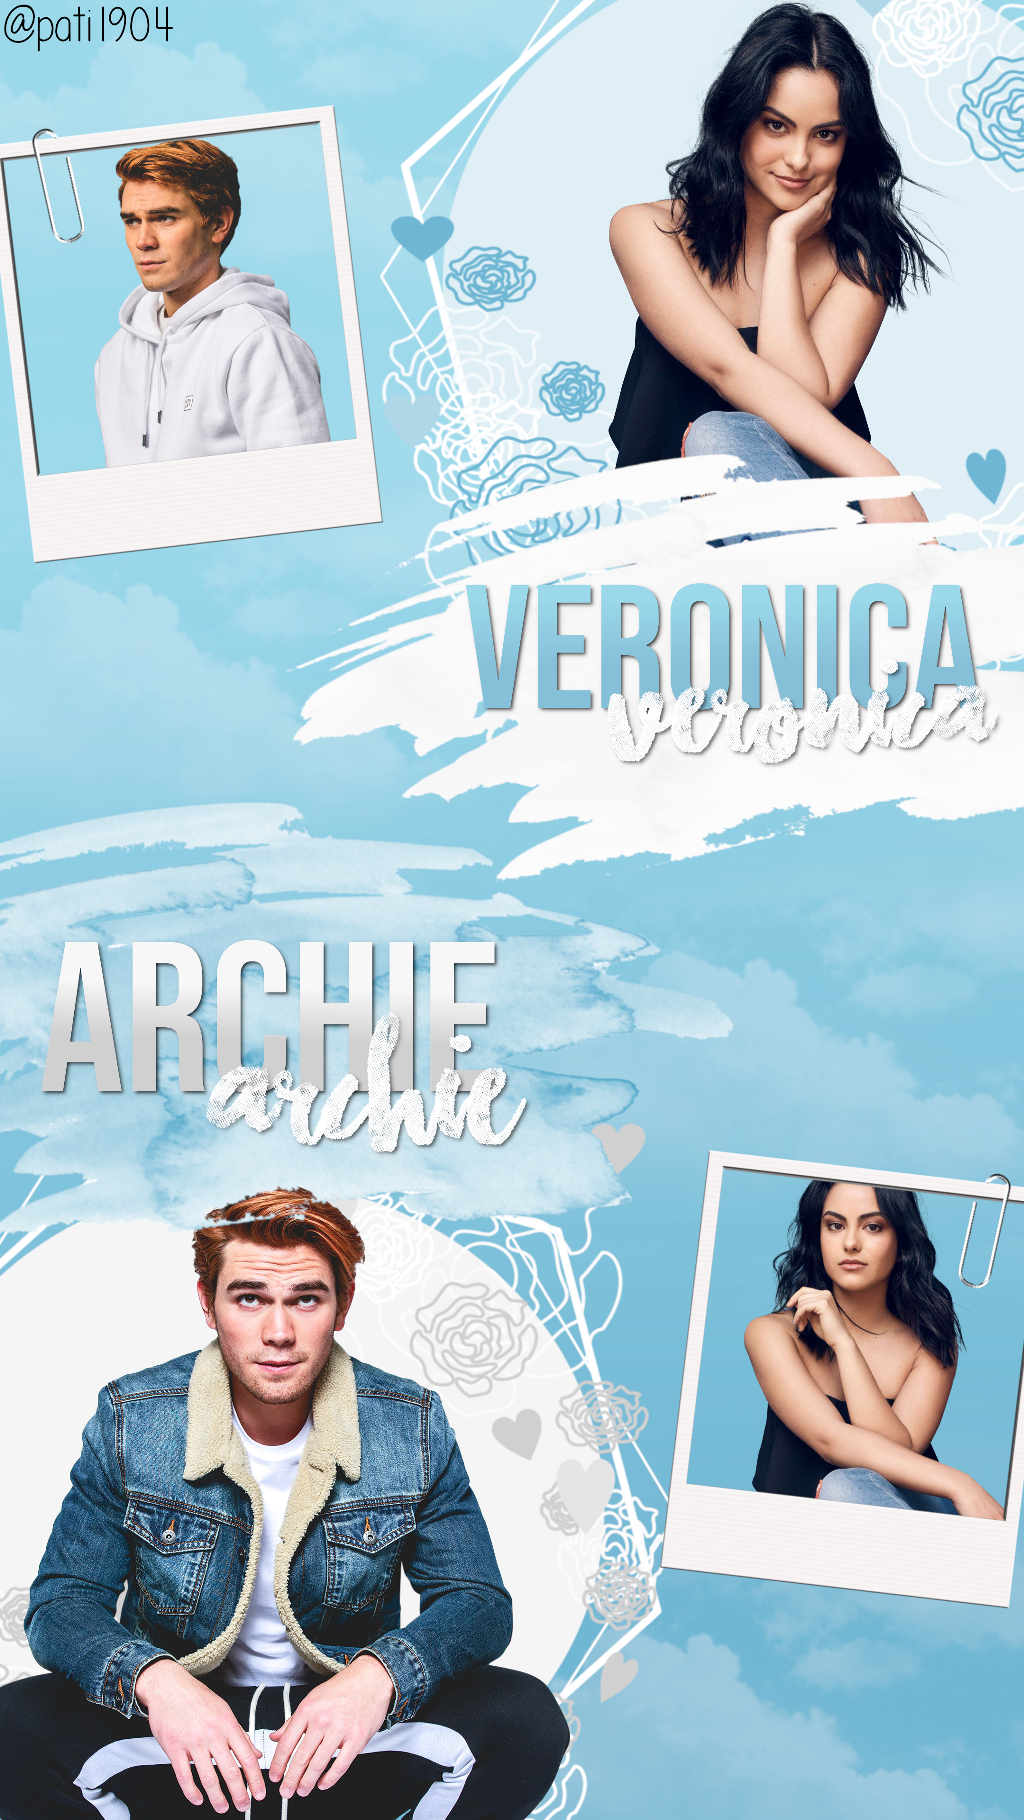 Wallpaper Veronica and Archie wallpaper veronica archie 1024x1820